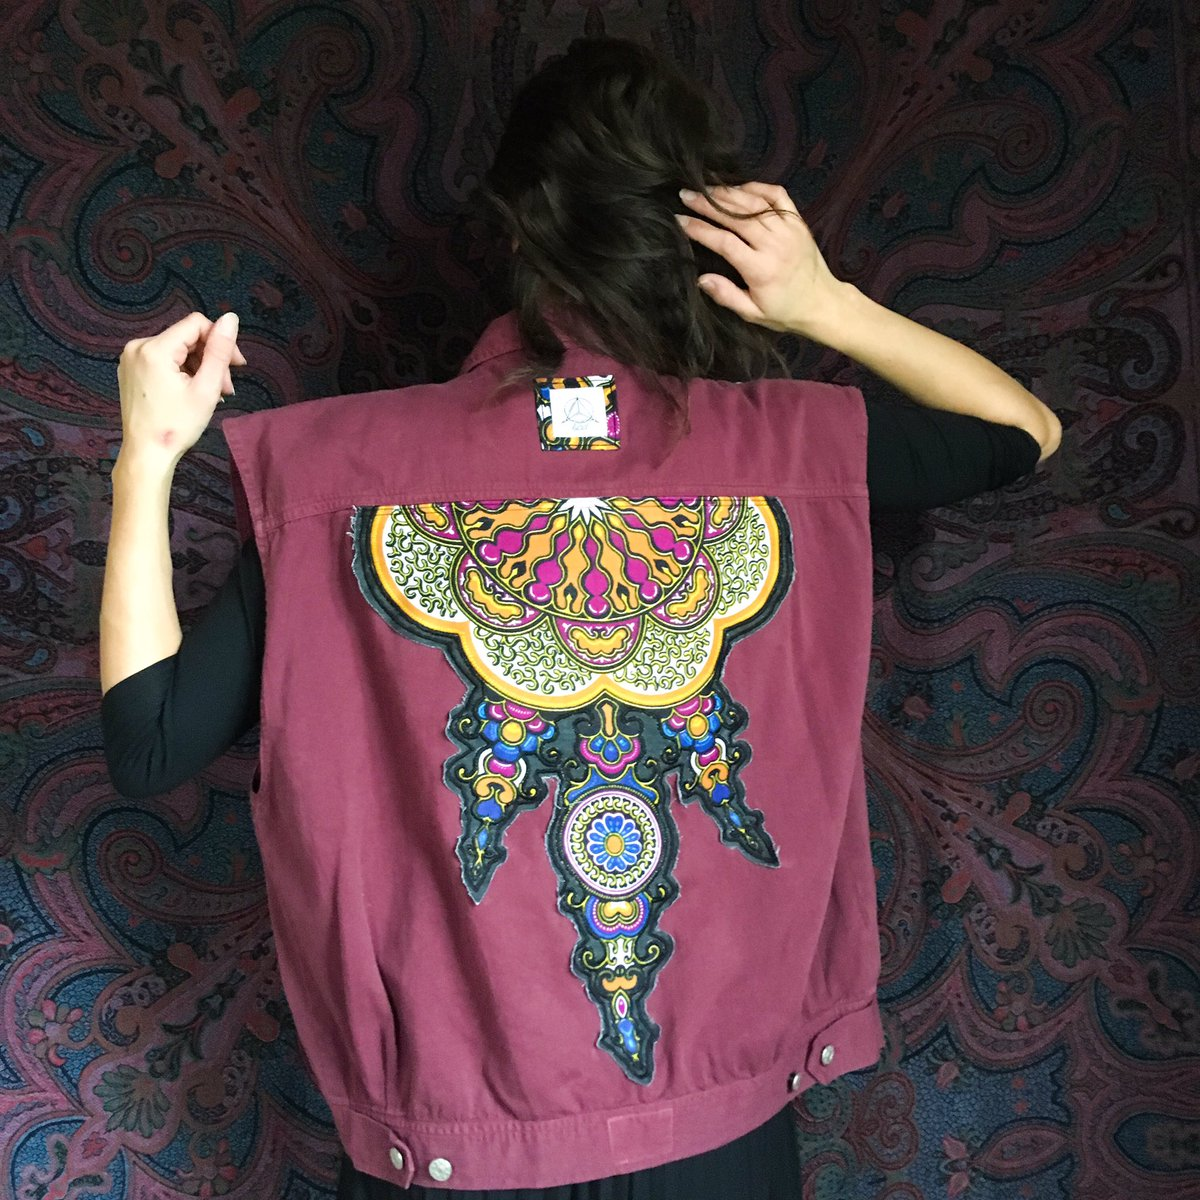 💜 FLASHSALE 💜 🌈 vintage 80's vest with mandala patch 🌈 80€ (shipping is an additional cost!) size M-L DM me for more info  #flashsale #supporthandmade #smallbusinessowners l